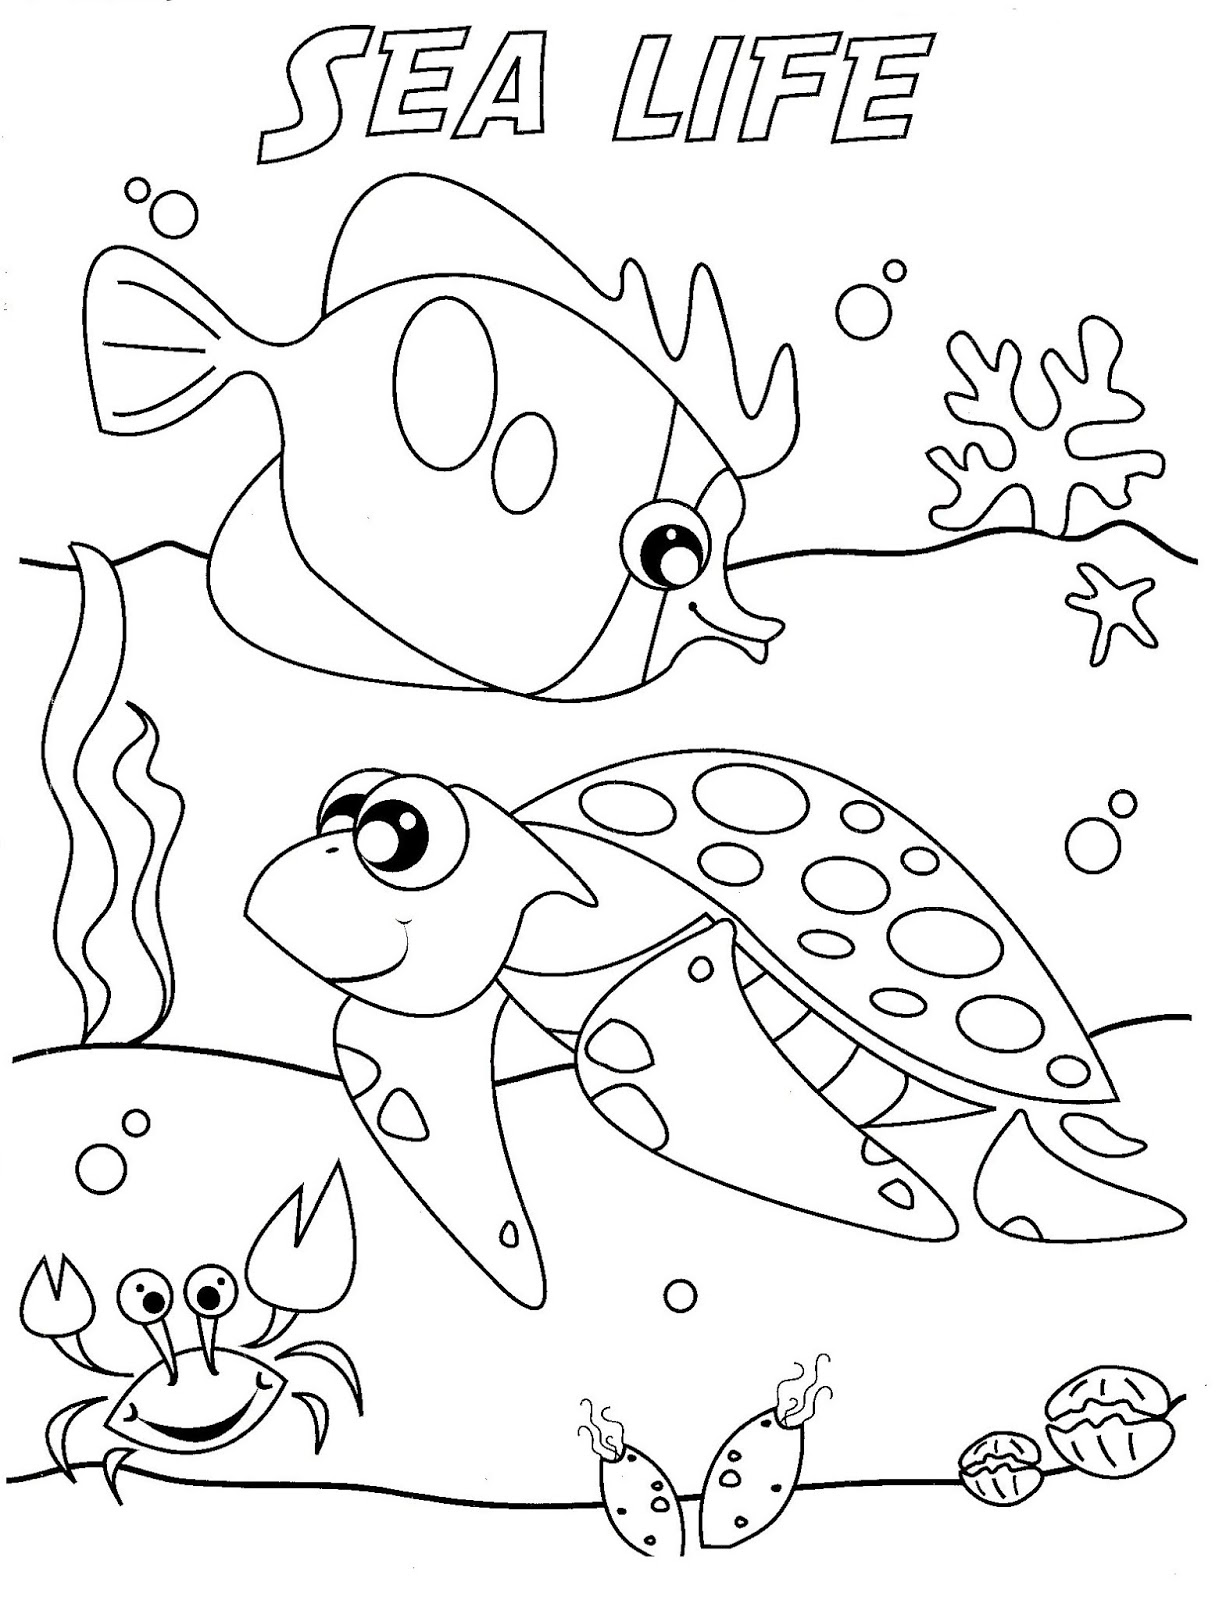 under the sea coloring free under the sea coloring pages to print for kids sea coloring under the